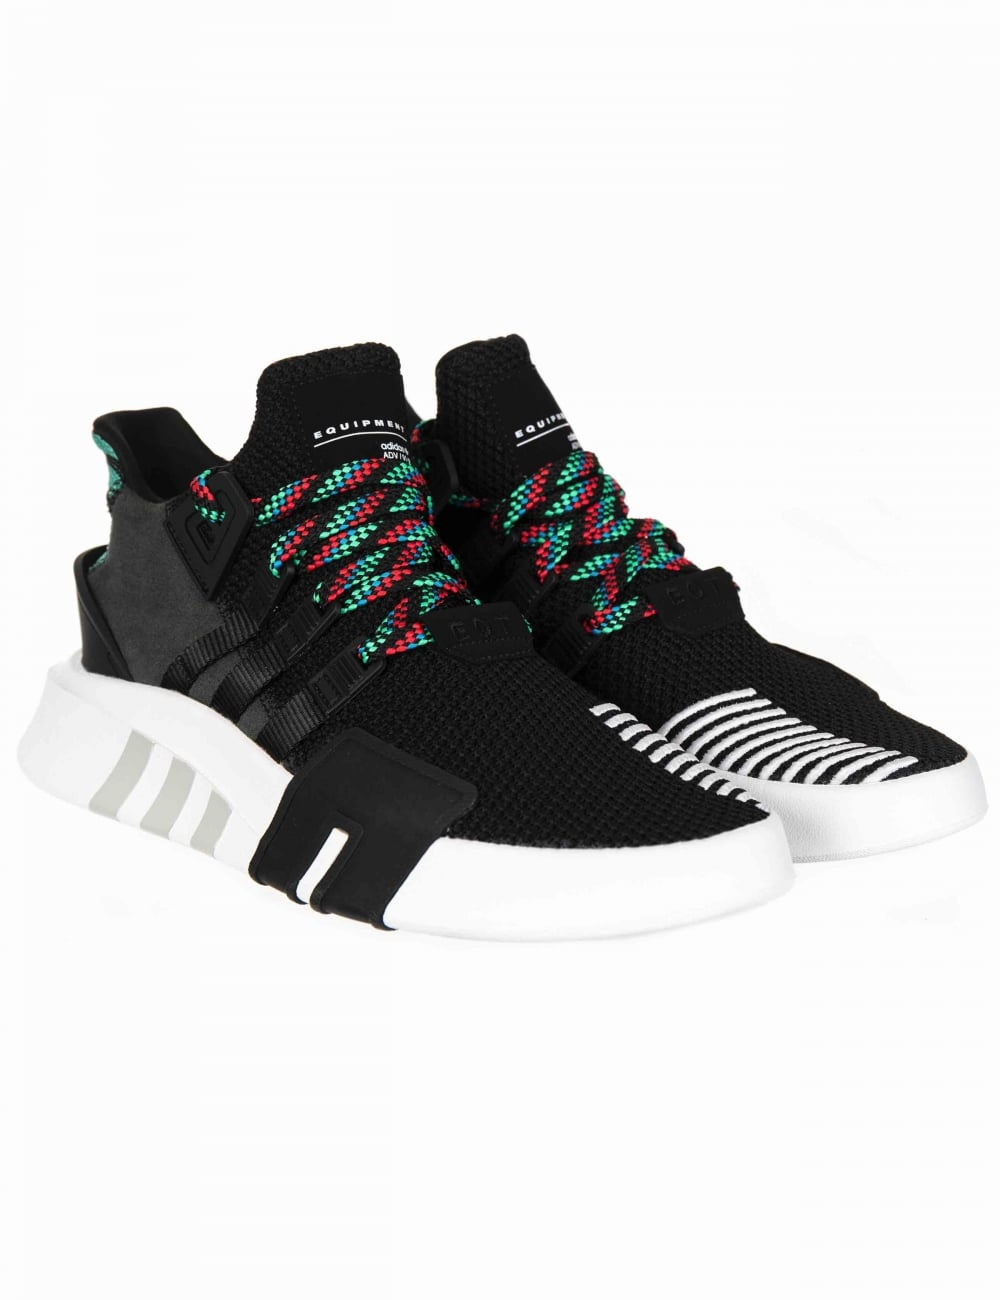 newest 2ac49 af5cf Adidas Originals EQT Bask ADV Shoes - Core BlackSub Green